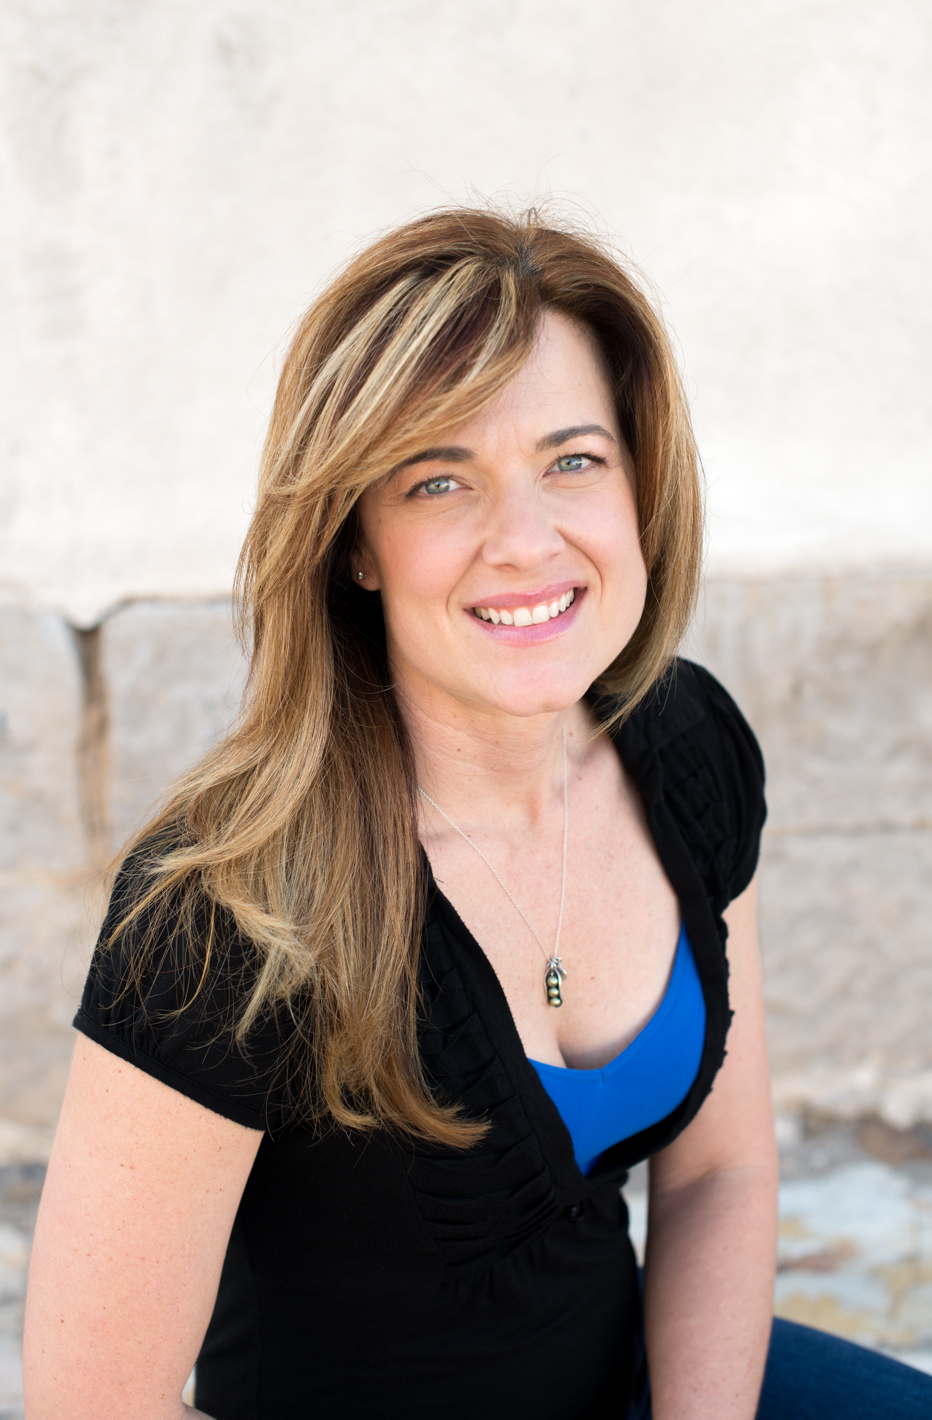 Tara Olding   manages the company and project finances. Tara has been in the construction industry for 15 plus years and has worked with both owner/developers and general contracting companies in Colorado and Arizona.